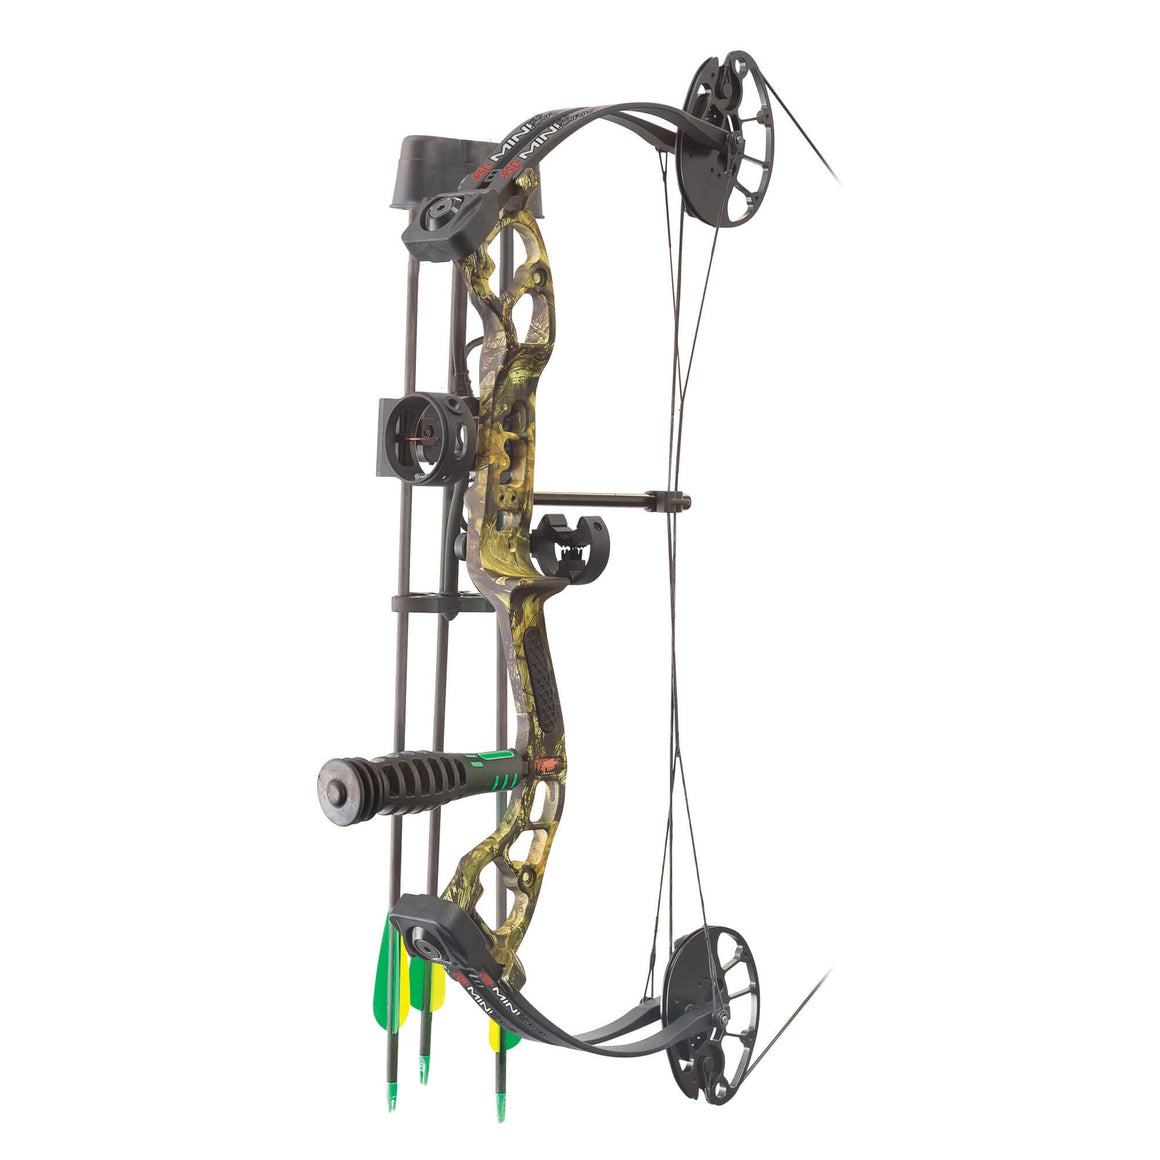 PSE Mini Burner Compound Bow